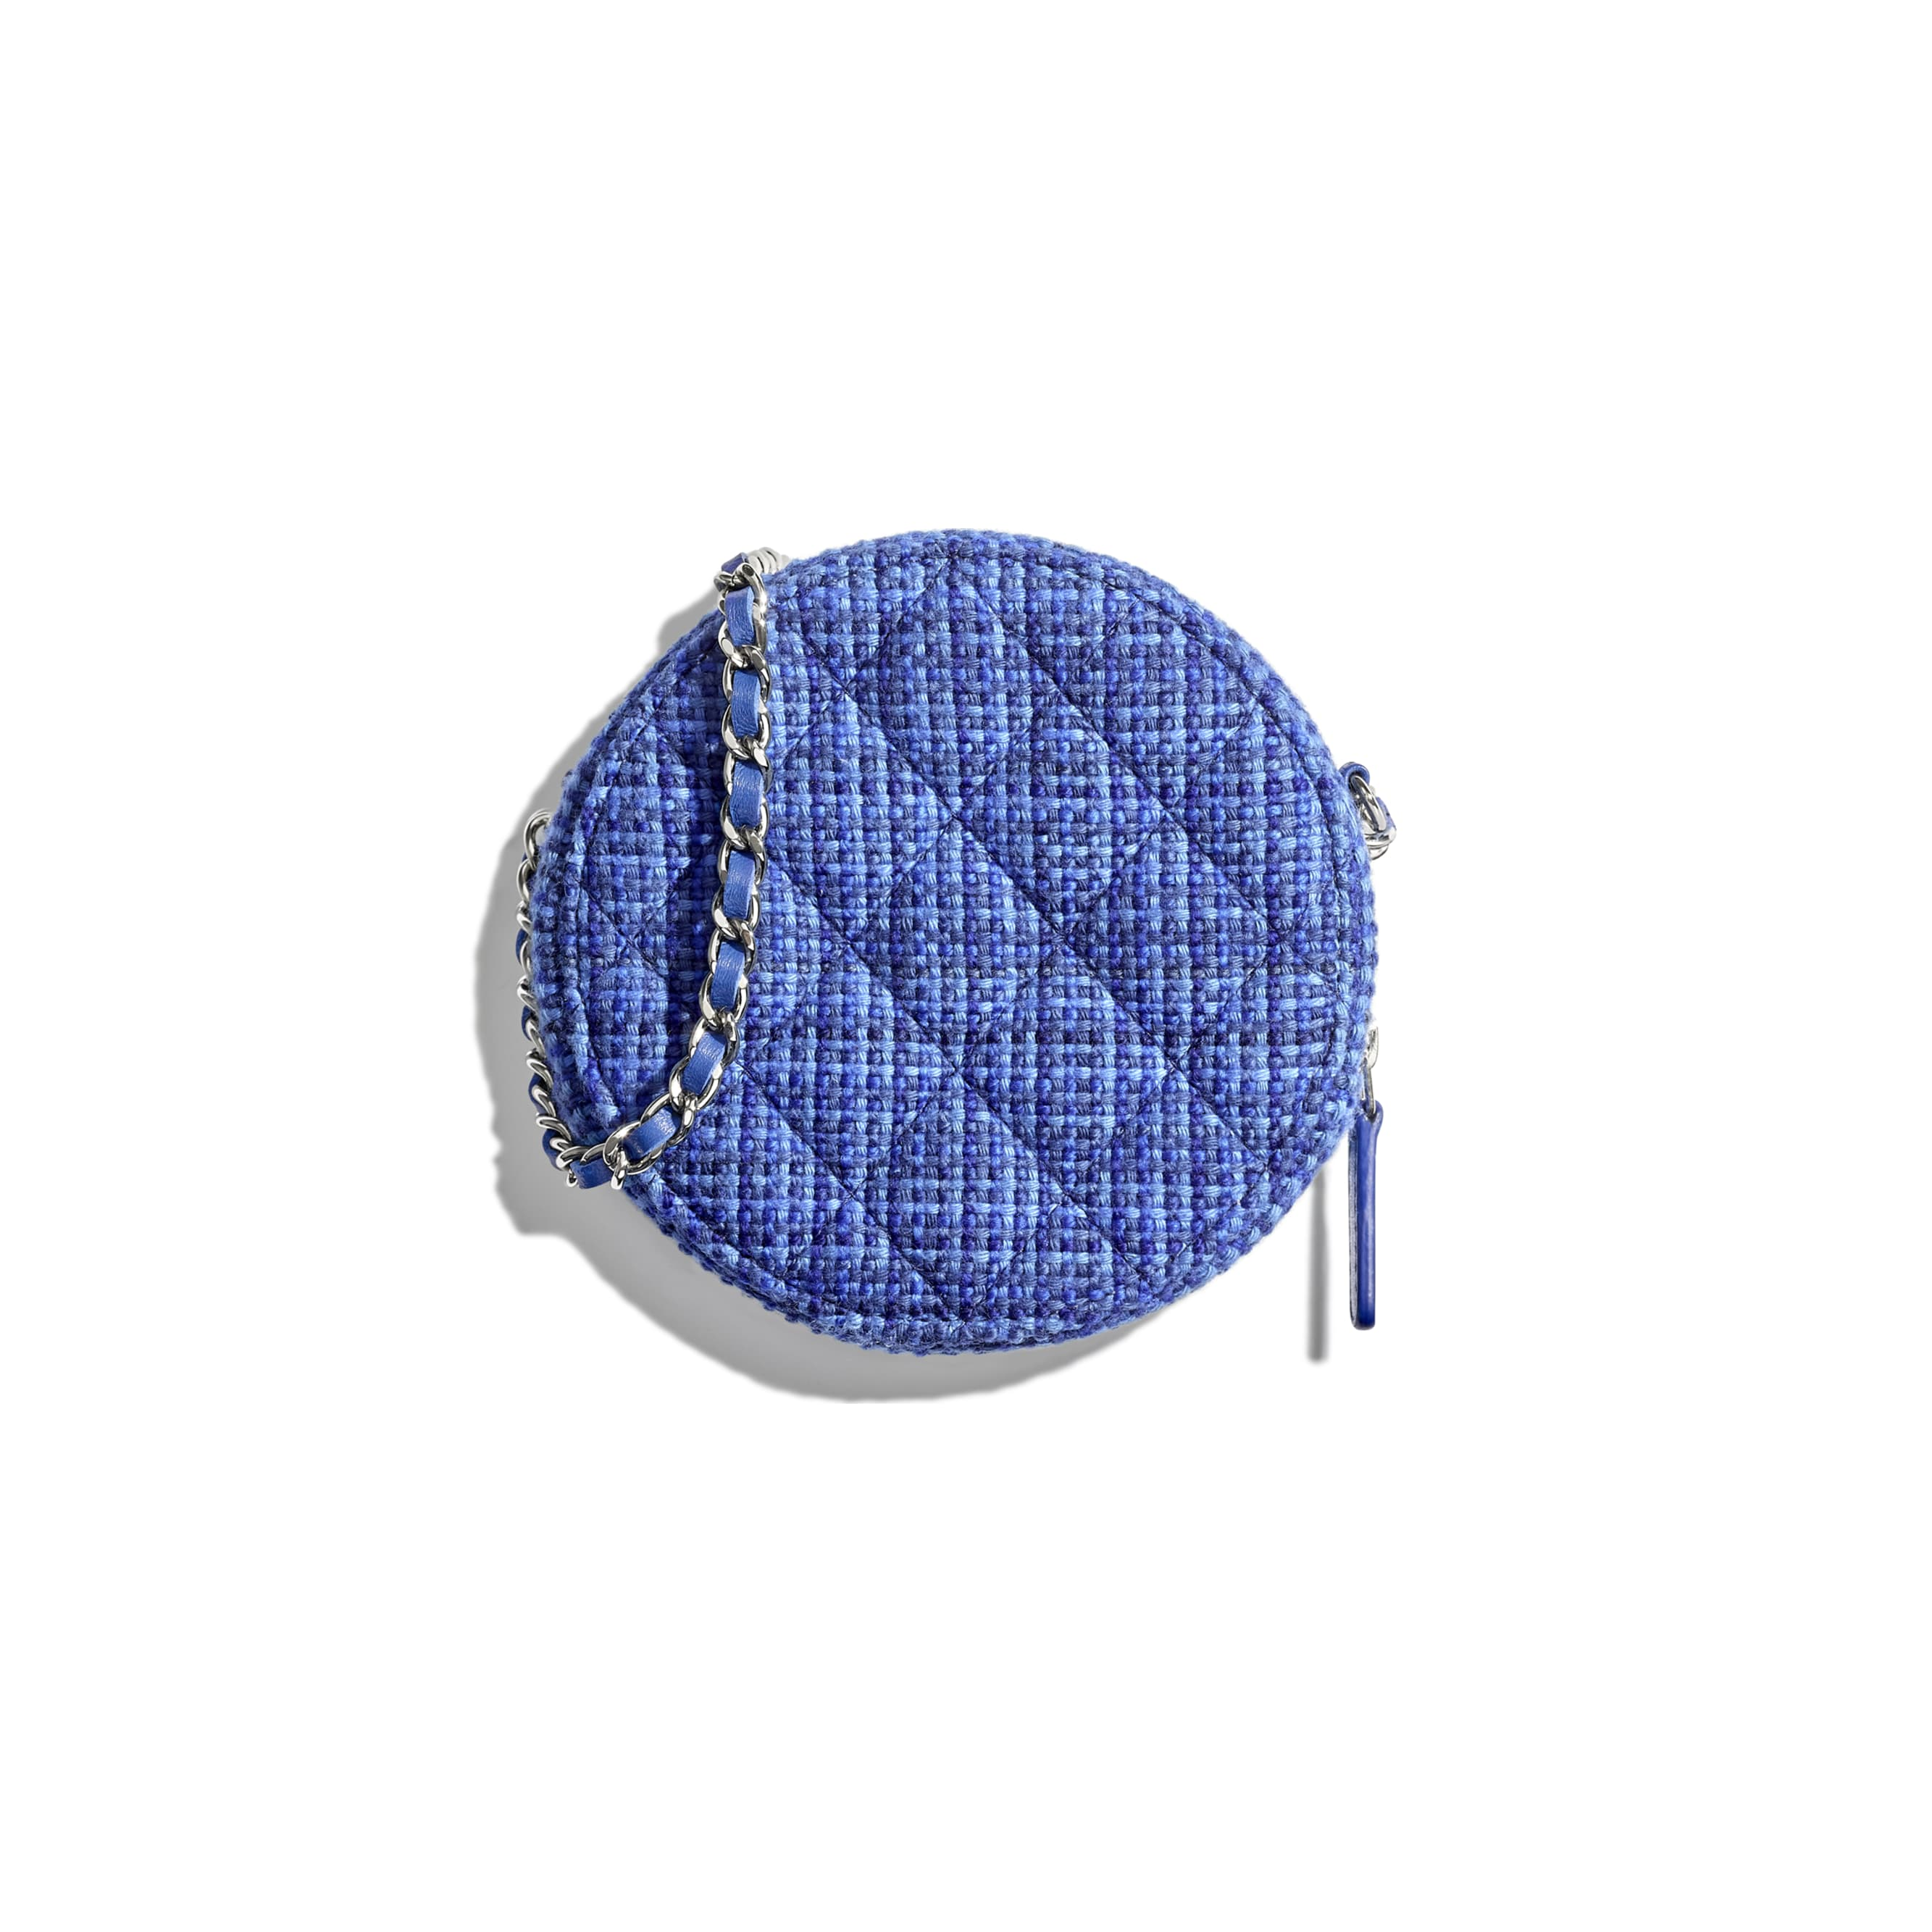 Classic Clutch With Chain - Blue - Tweed & Silver-Tone Metal - Alternative view - see standard sized version